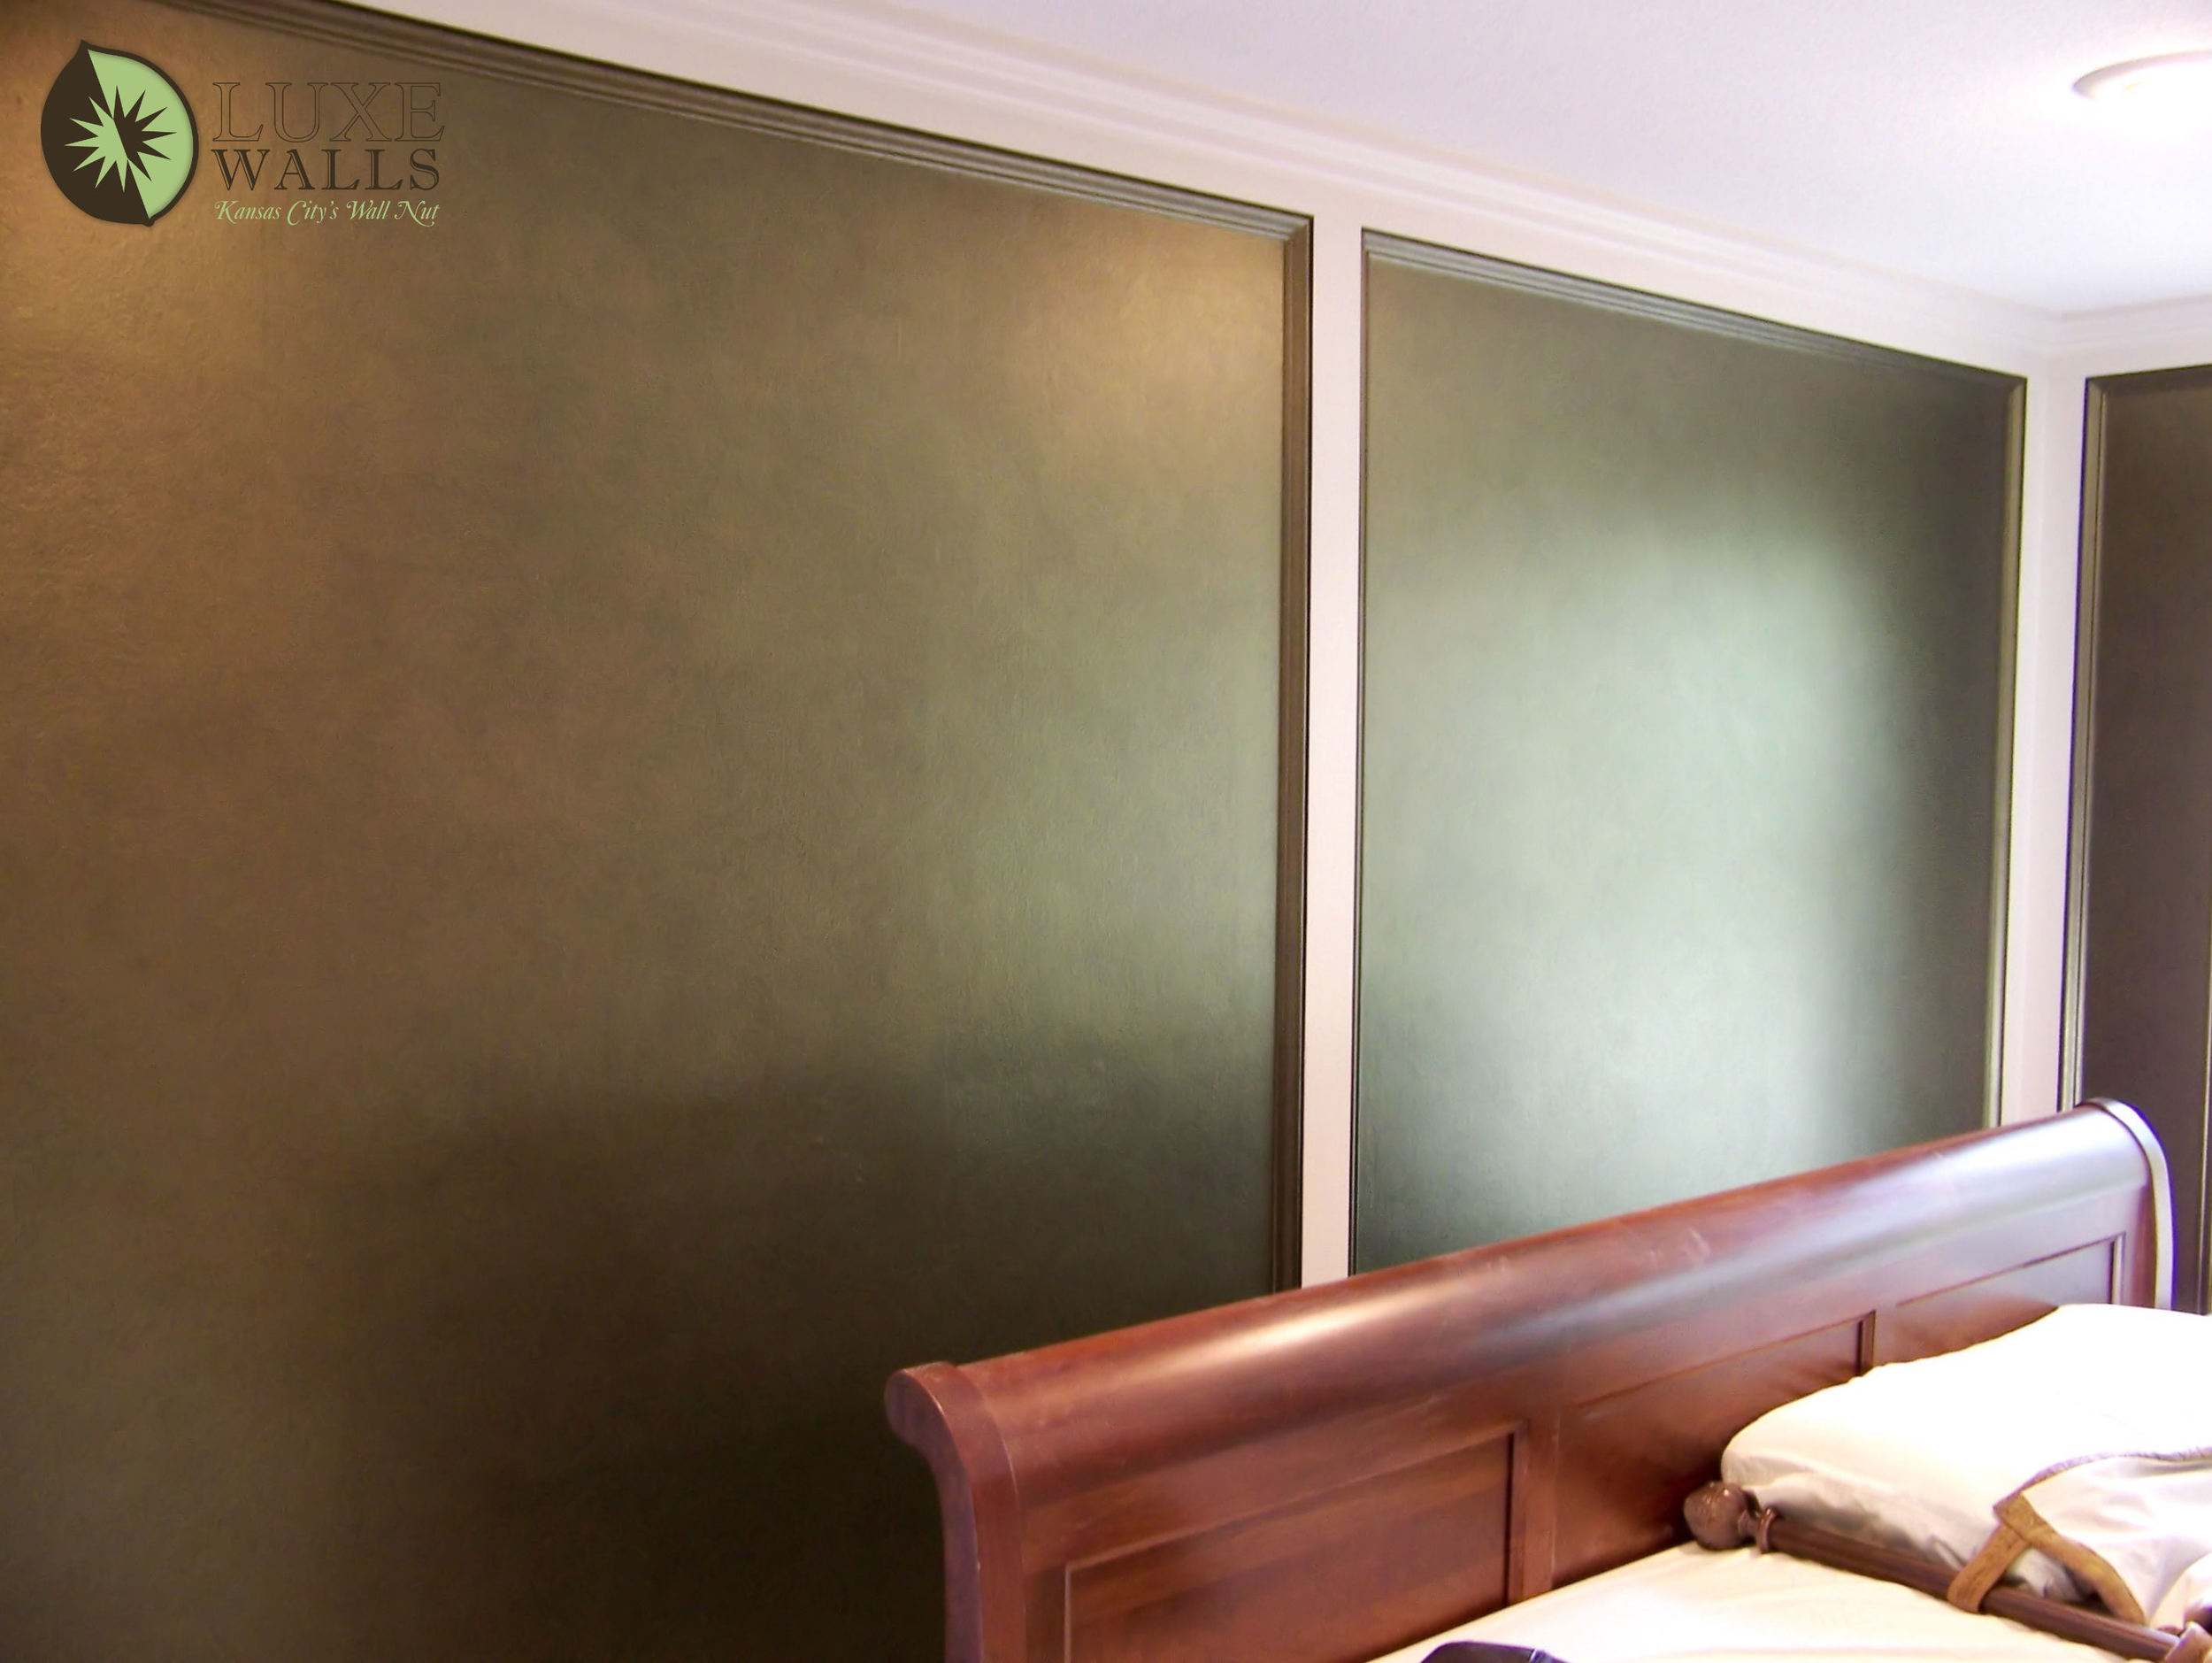 wm metallic painted walls.jpg